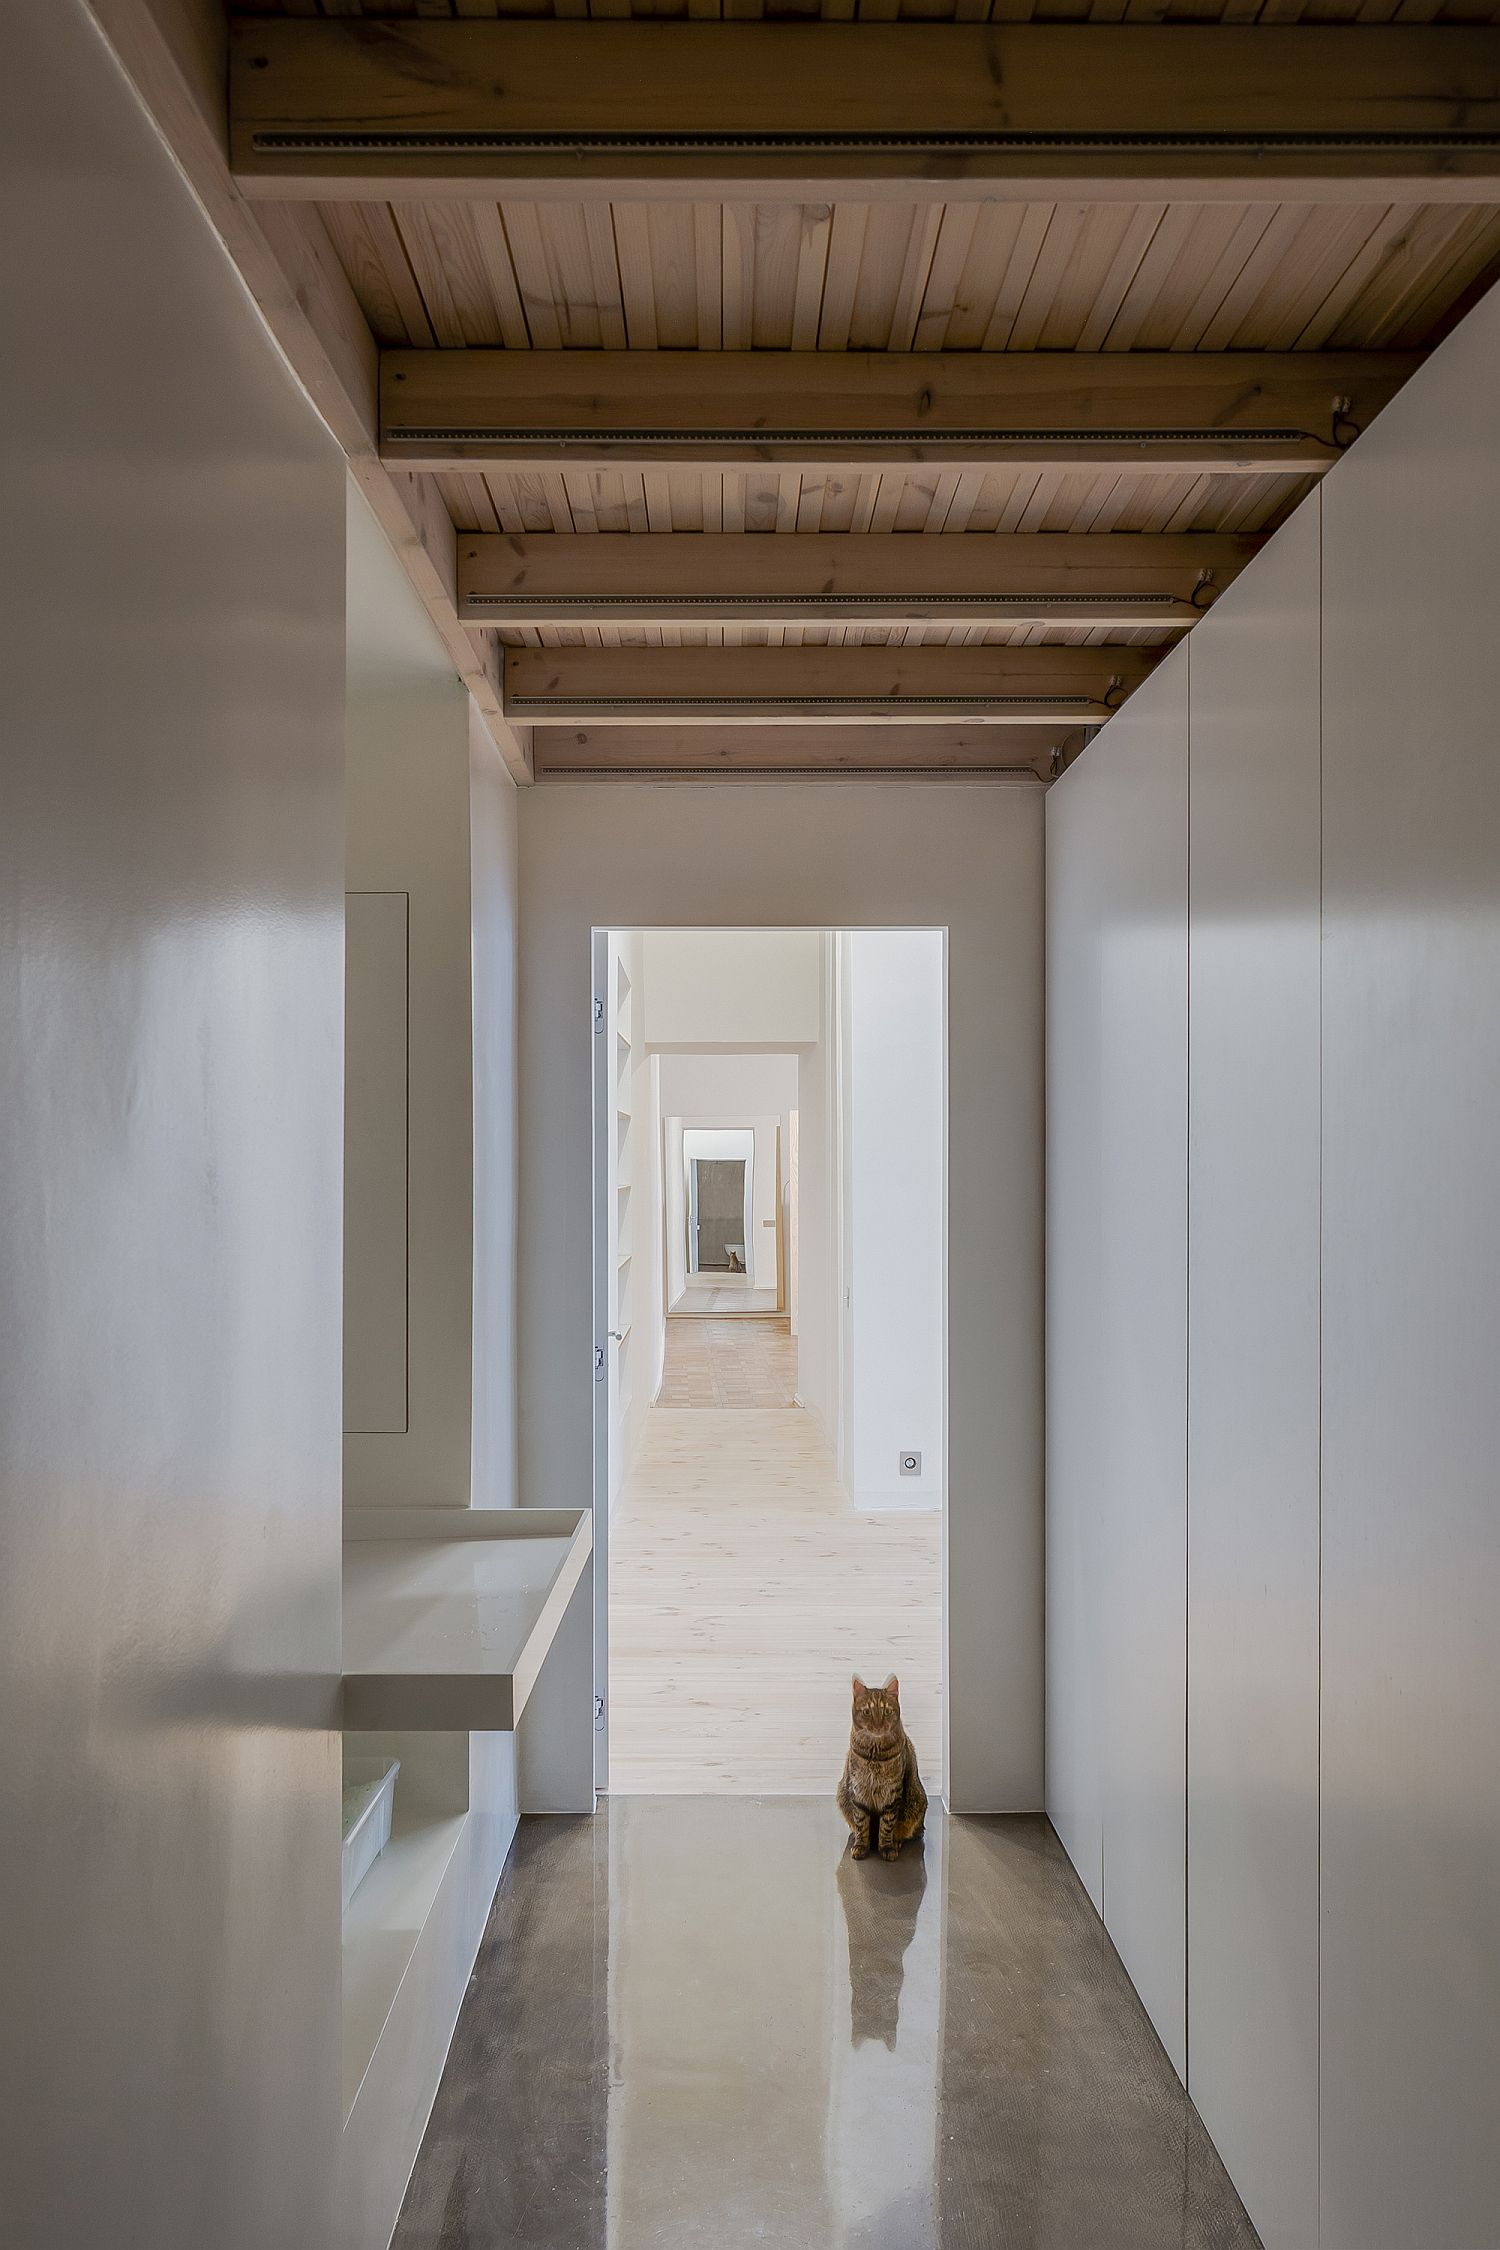 White hallways inside the apartment along with a touch of woodsy warmth